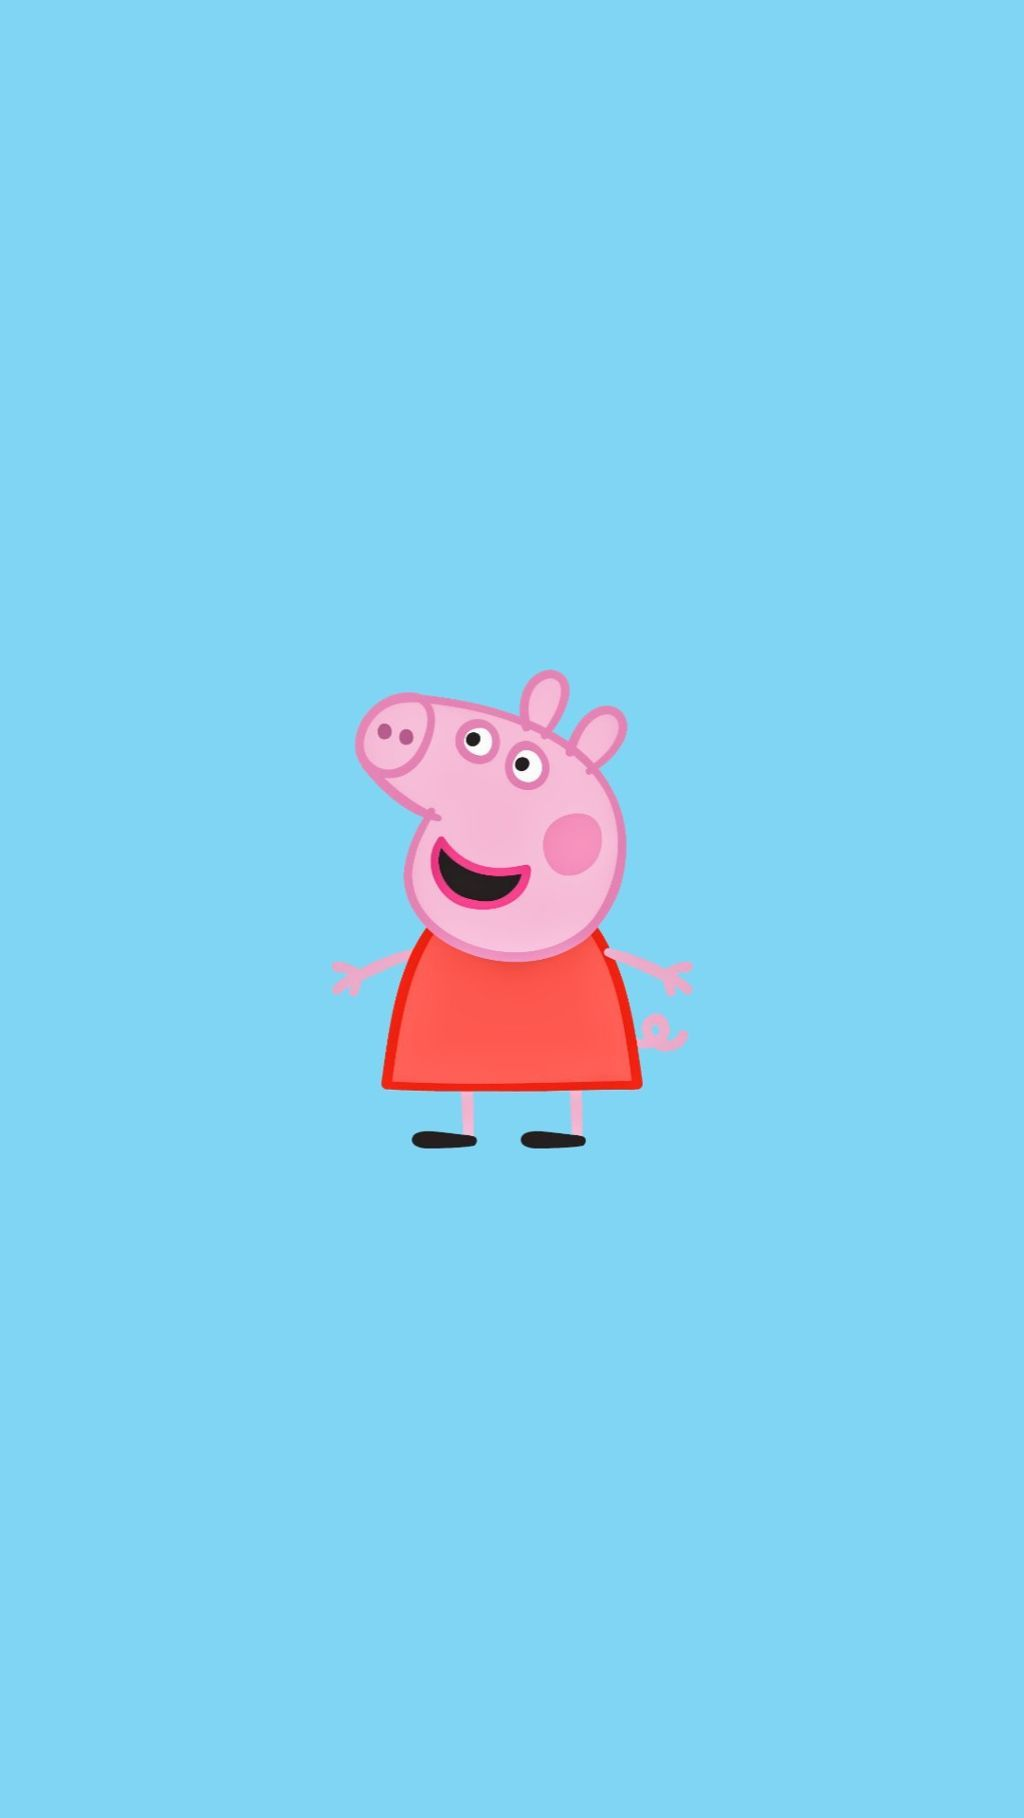 Sksksk and I oop (With images) Peppa pig wallpaper, Pig